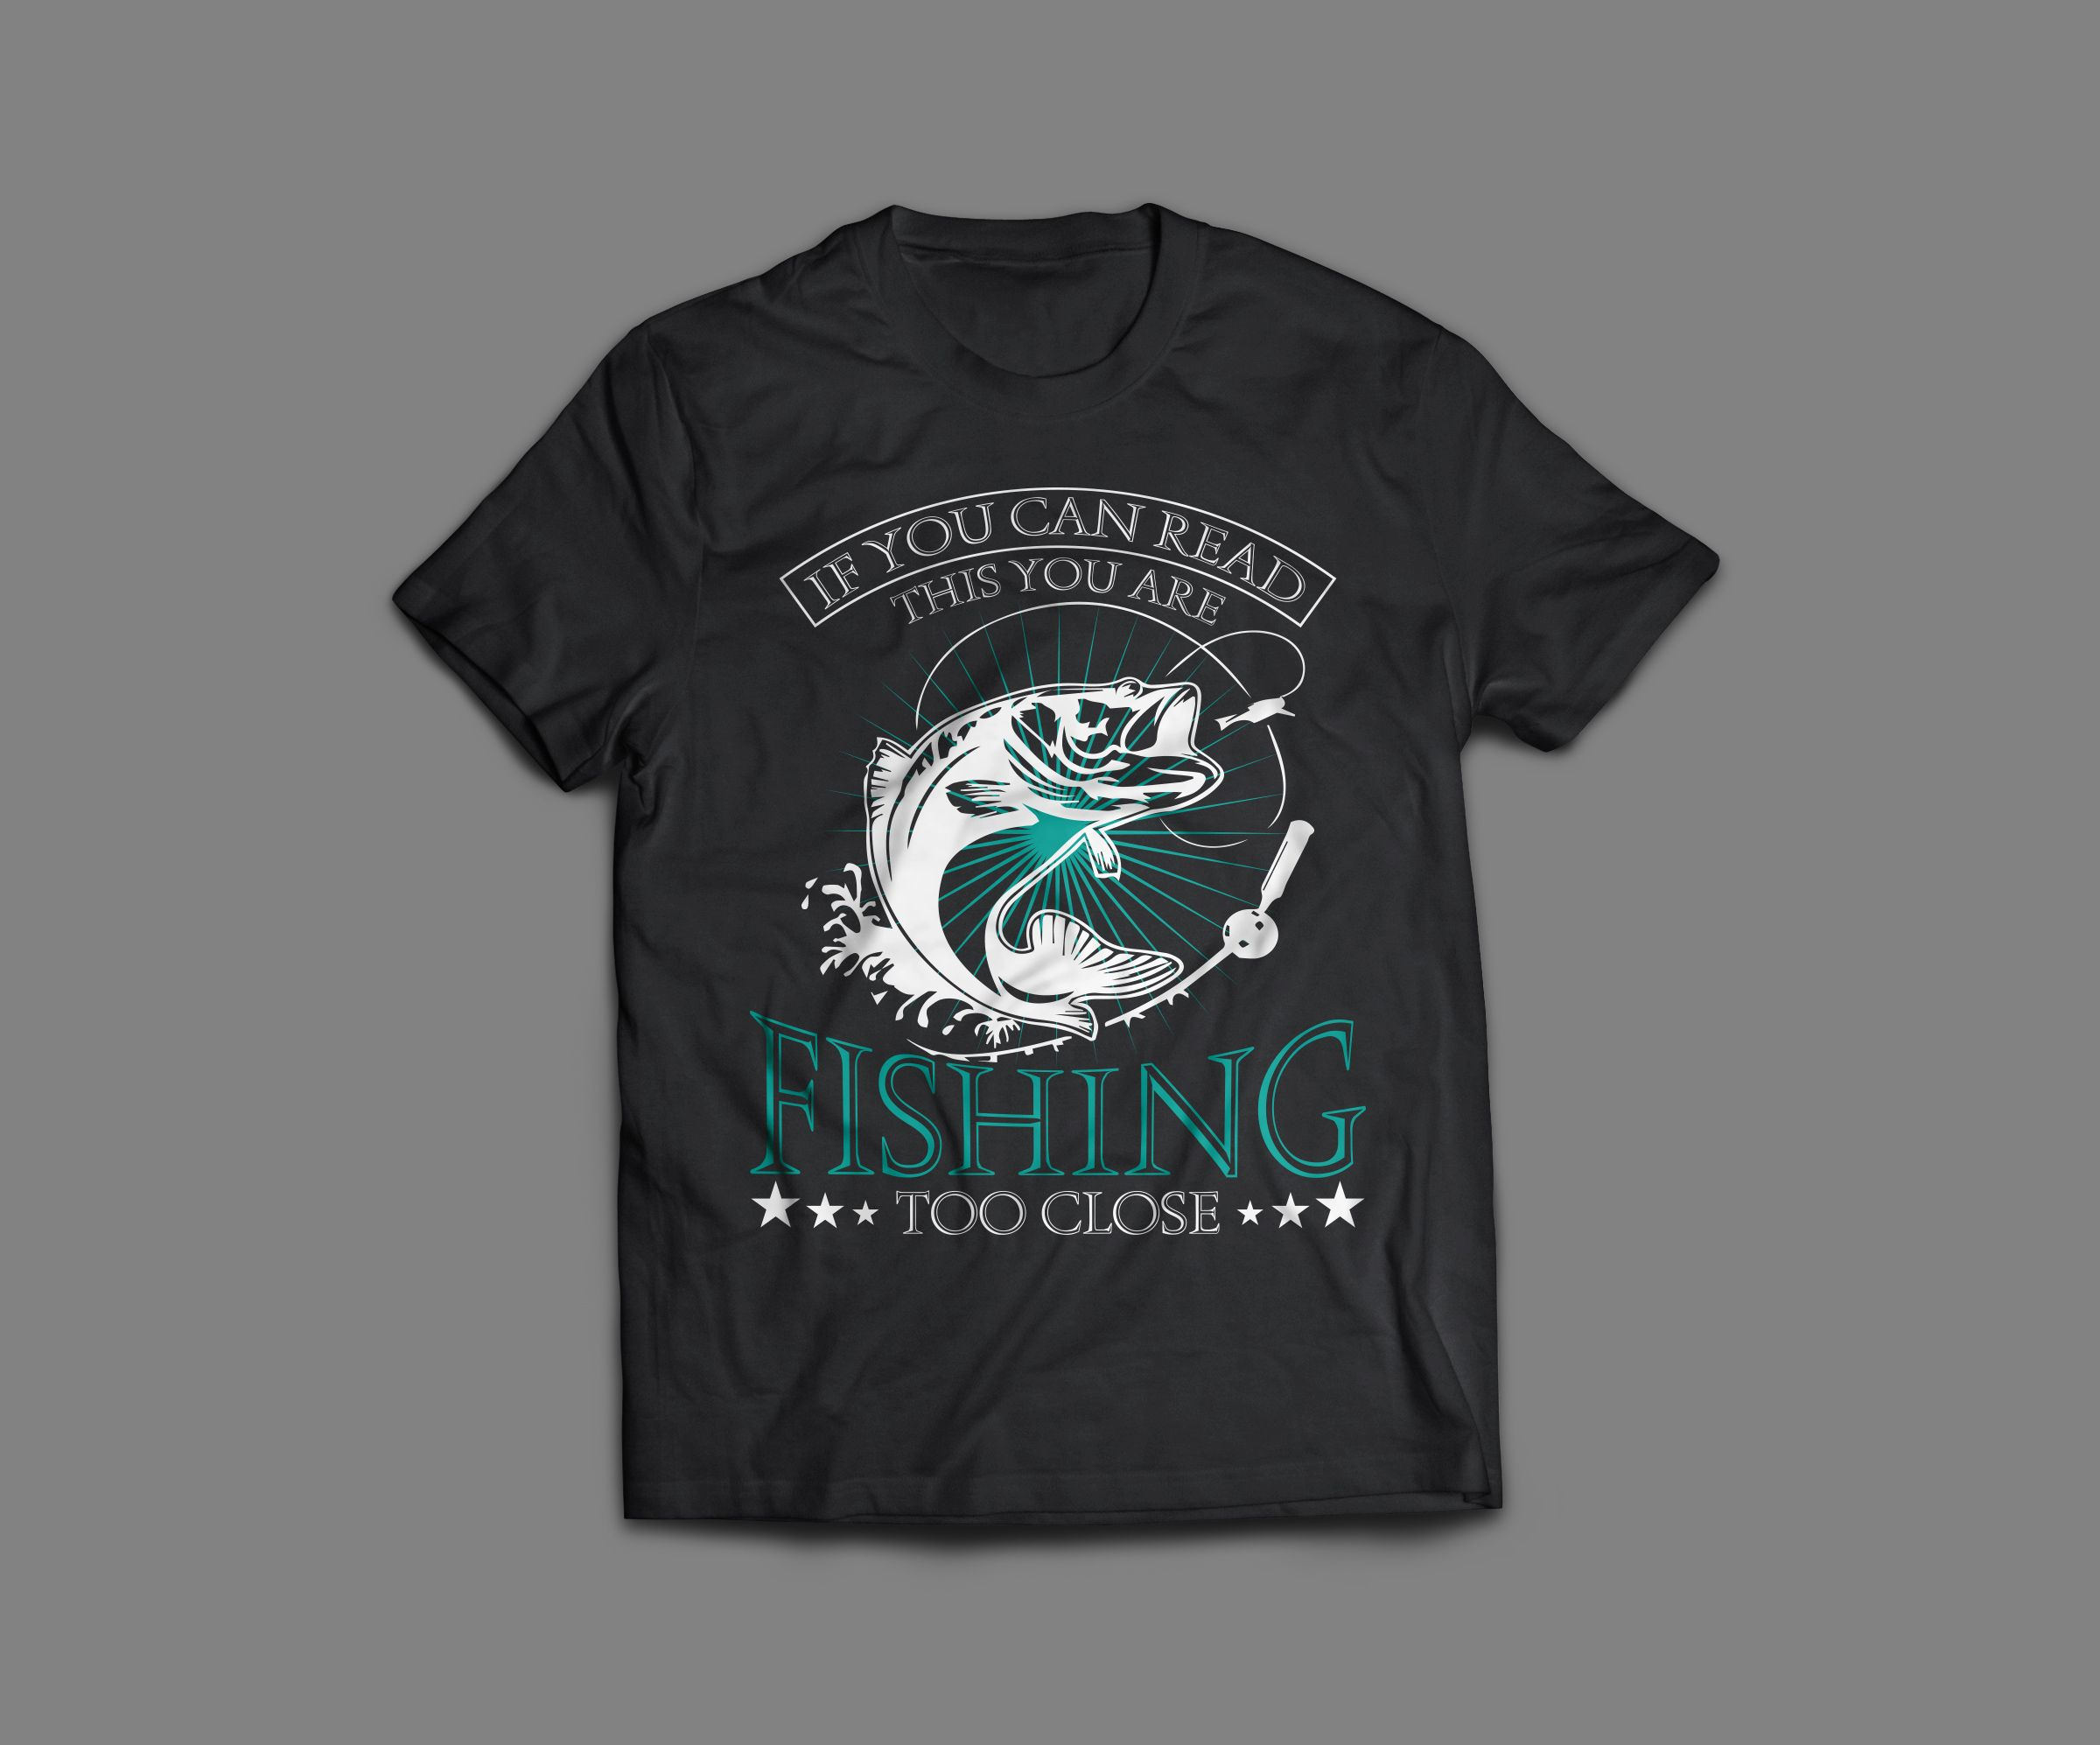 Our New T Shirt Design Looking For Costume T Shirt Design For Your